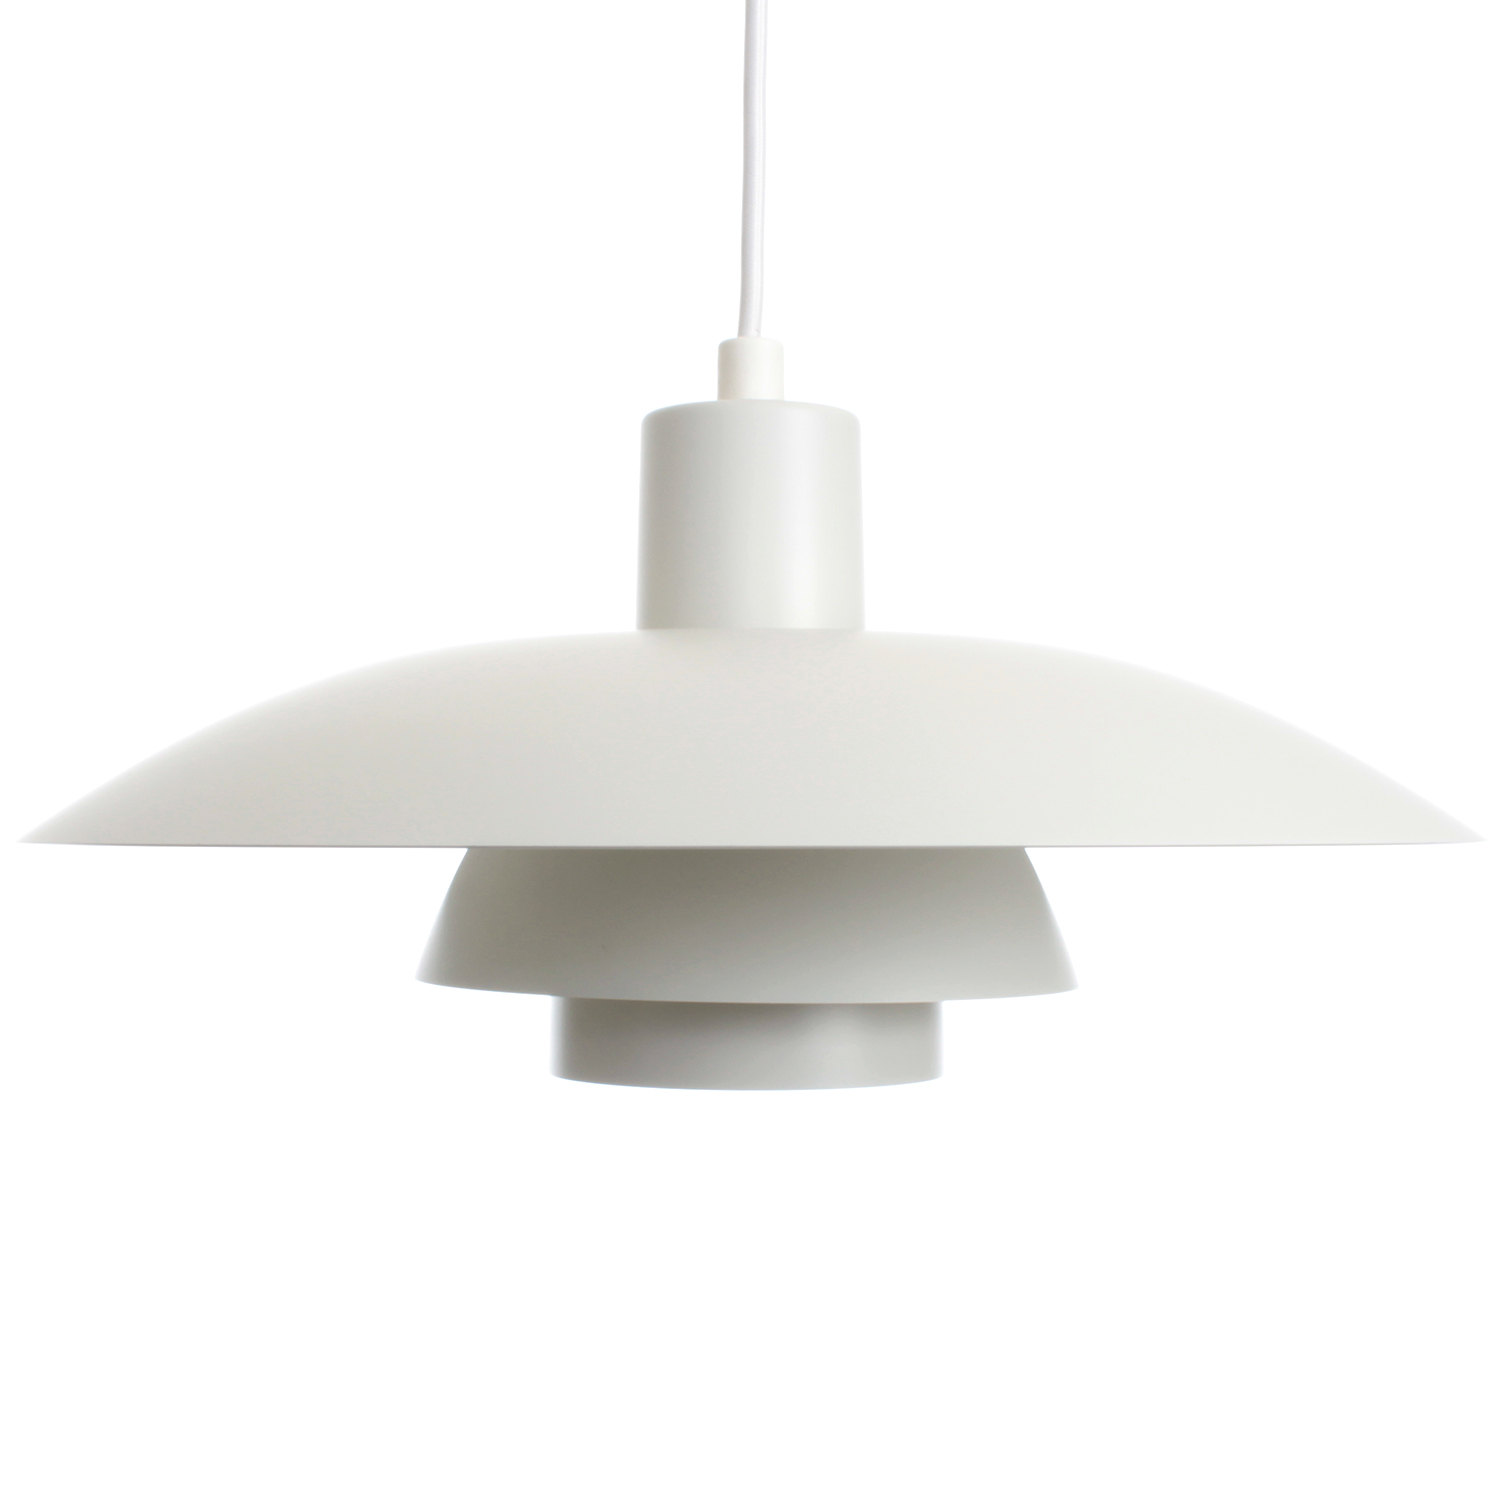 Original PH 3/4 lamp Louis Poulsen white color